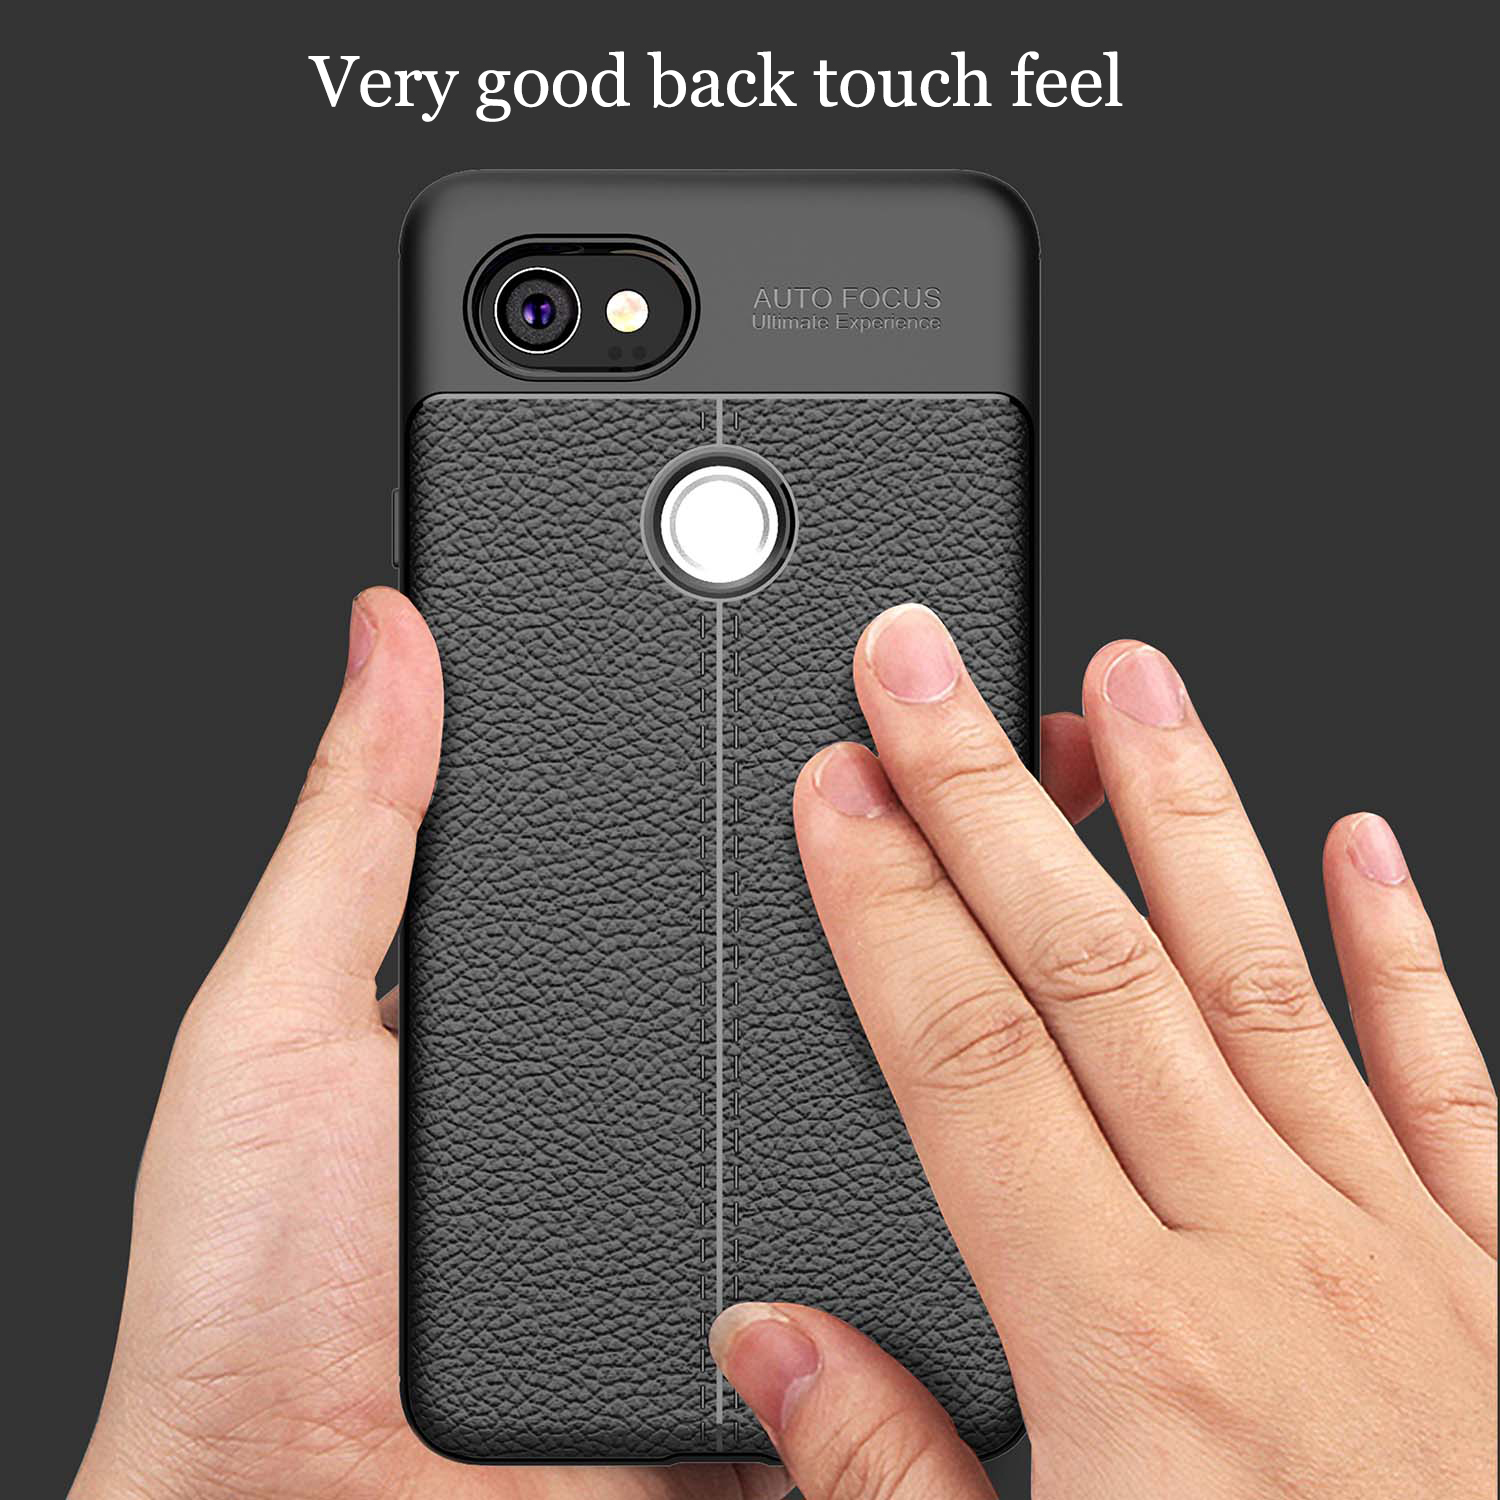 best website 0f9f1 951b3 360 Leather Phone Case For Google Pixel 2 Non-Slip TPU Coque For Google  Pixel 3 Or 3 Xl Luxury Shell For Pixel 2 Xl Cover